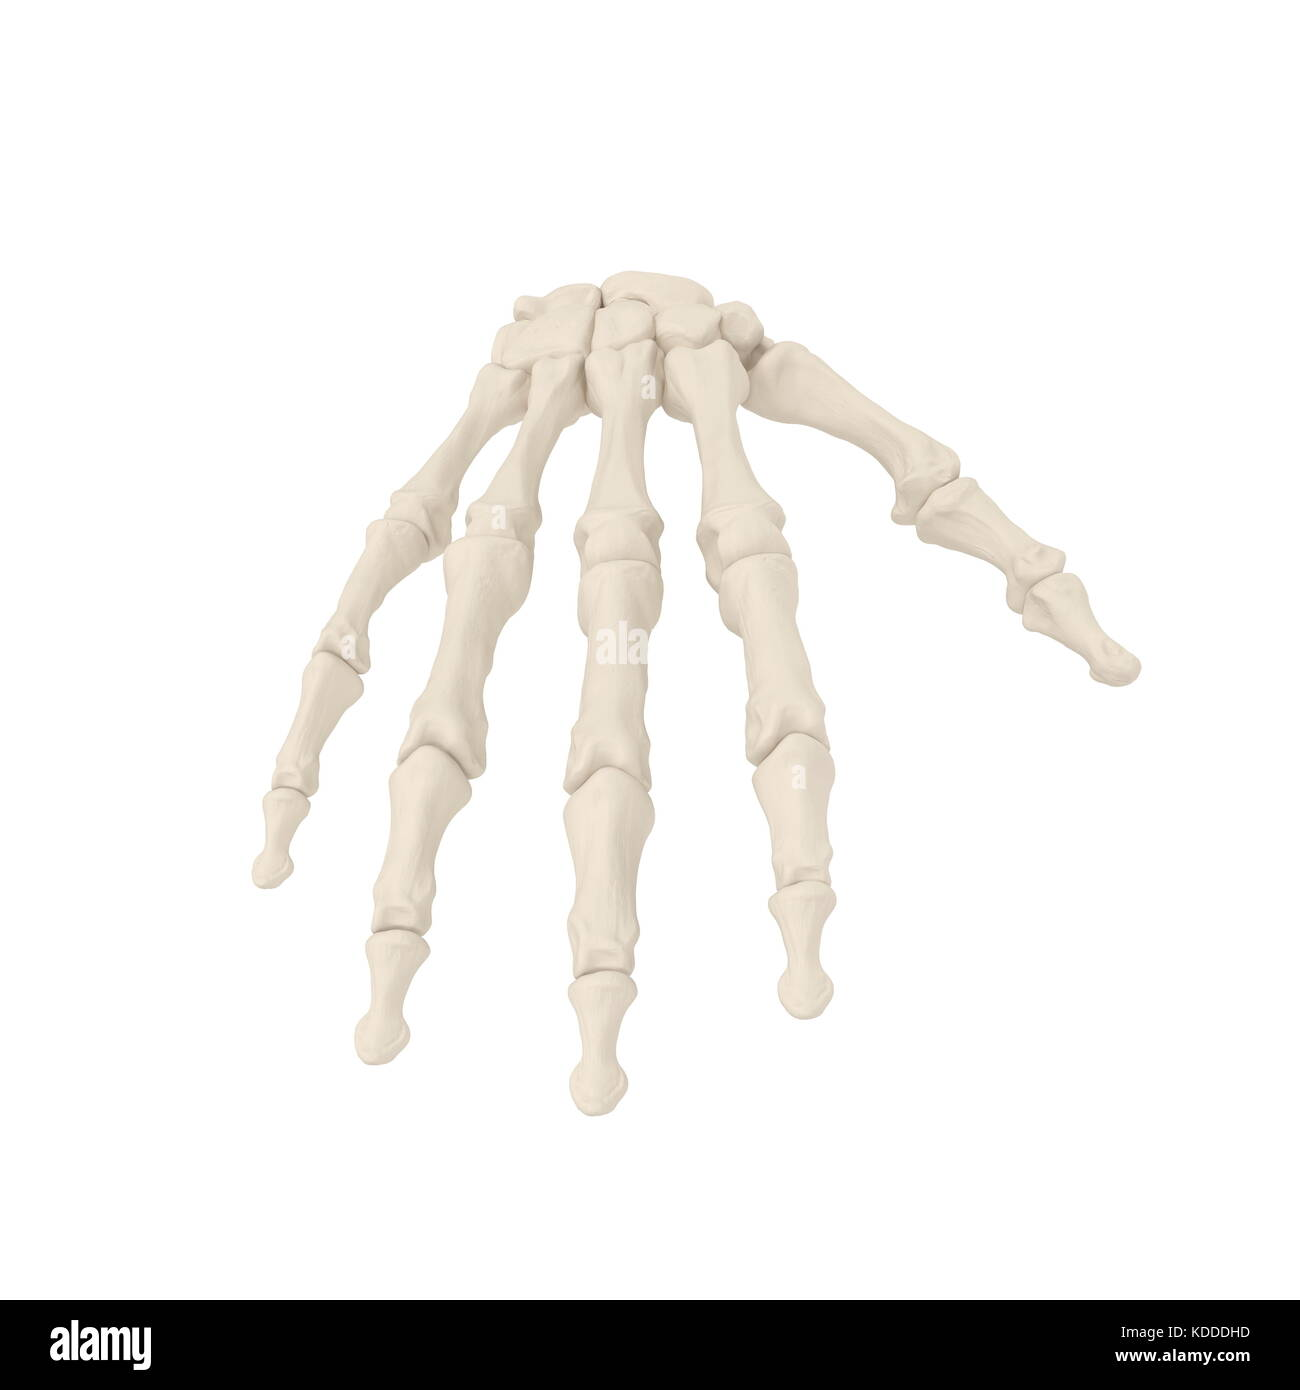 Arm Bones Stockfotos & Arm Bones Bilder - Alamy